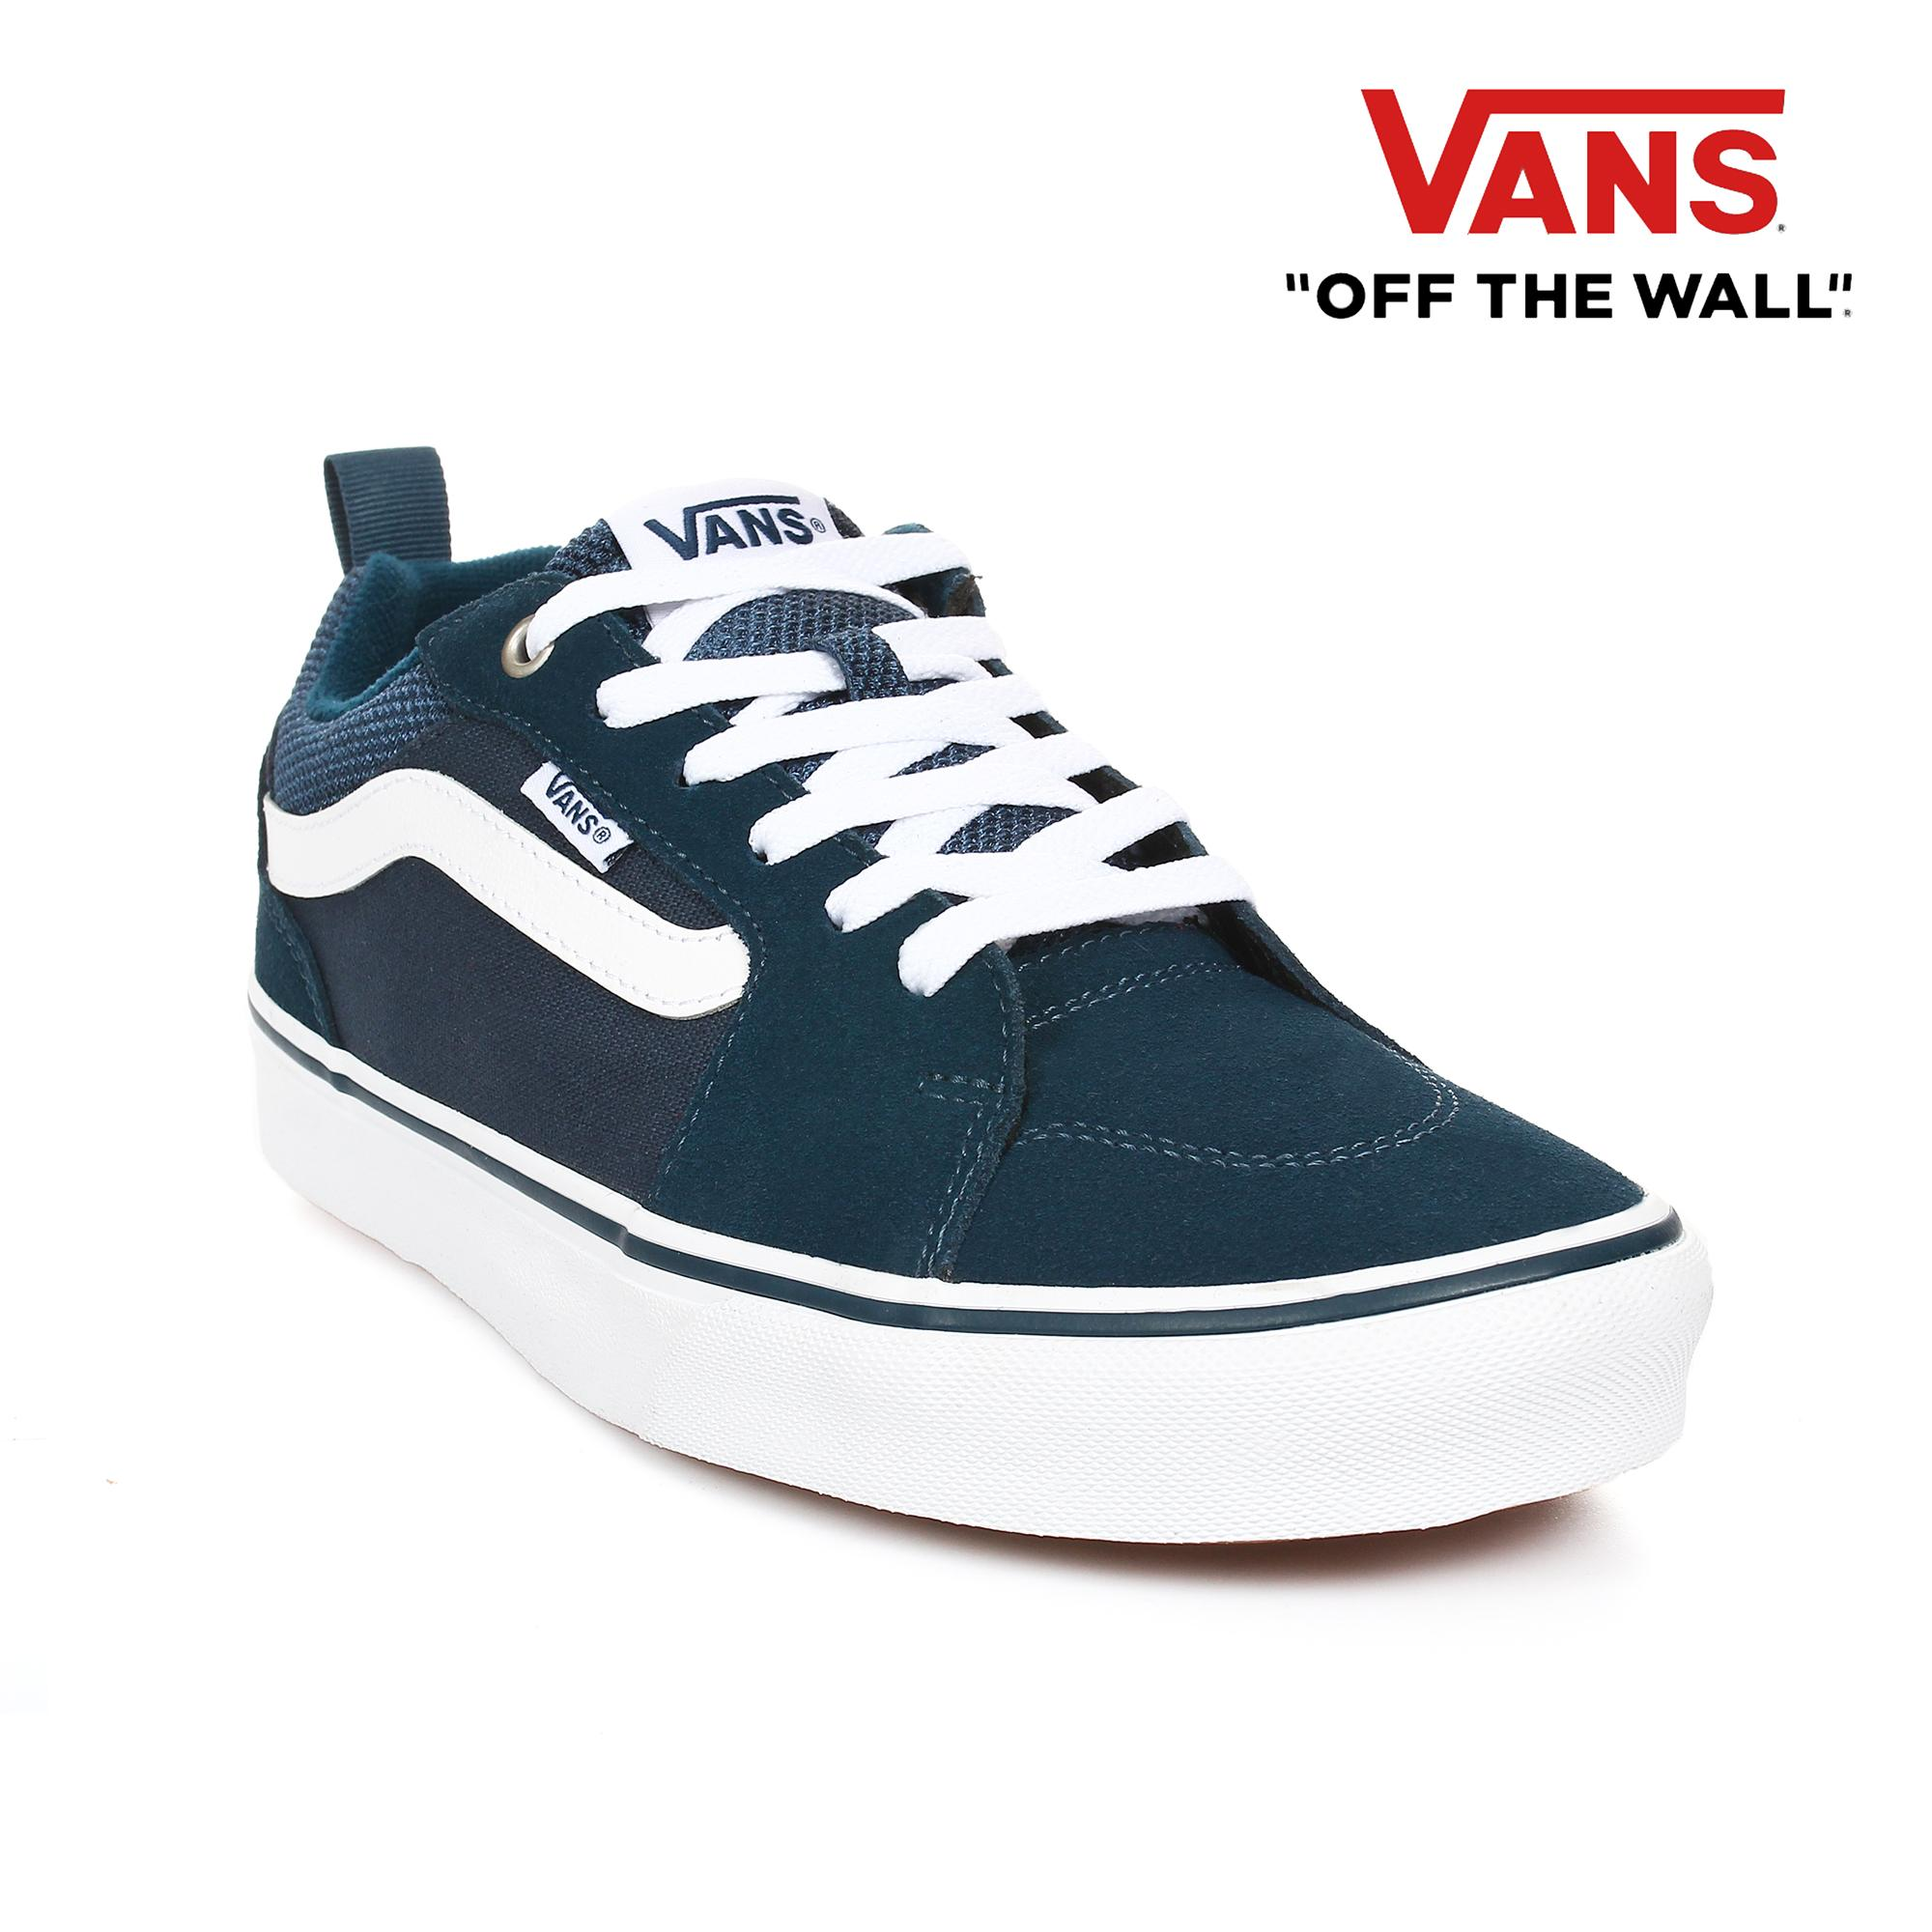 09cc91a244 Vans Shoes for Men Philippines - Vans Men s Shoes for sale - prices ...